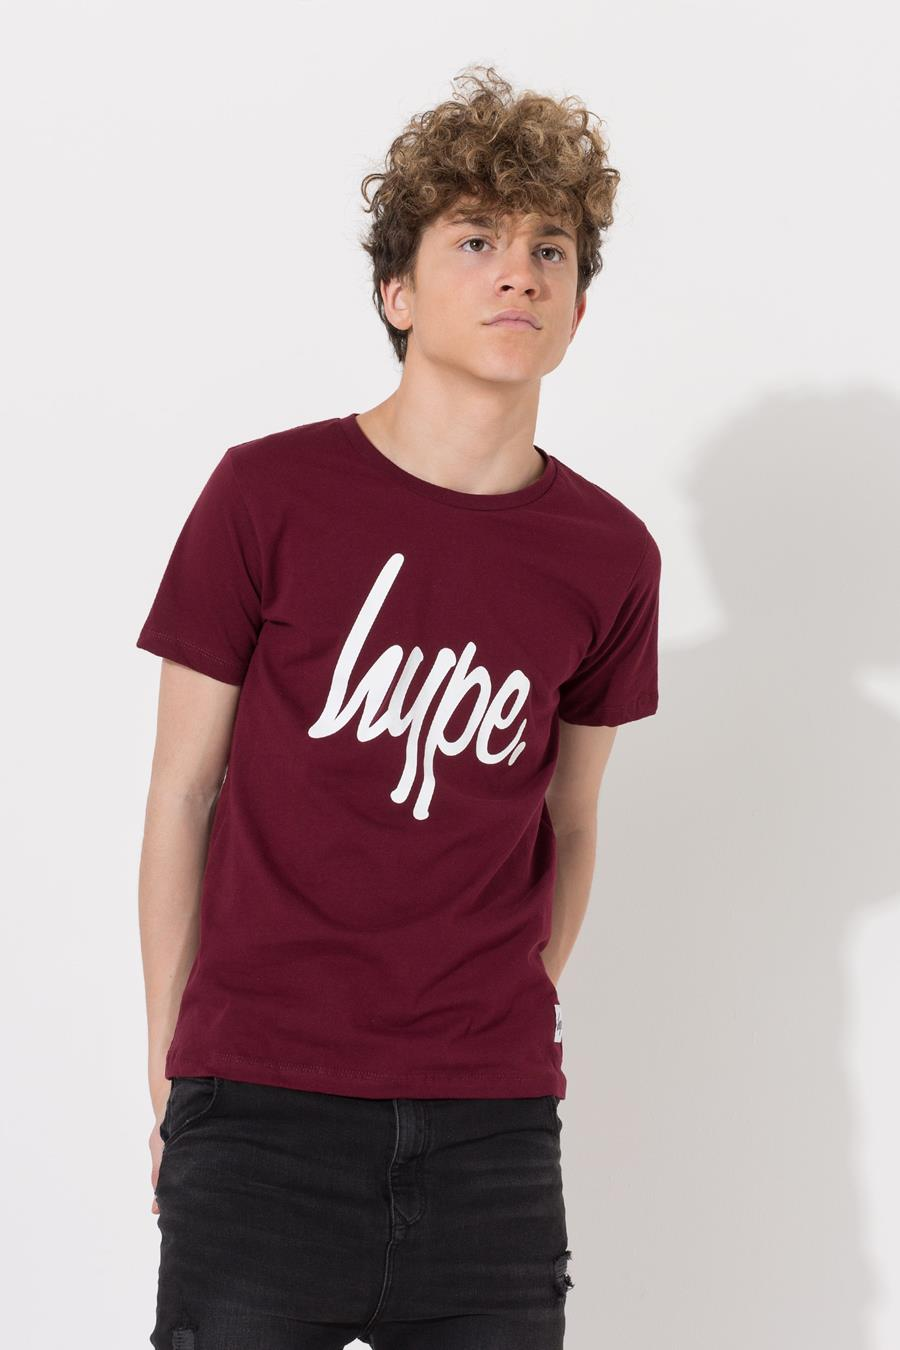 T-Shirts, Polos & Tops